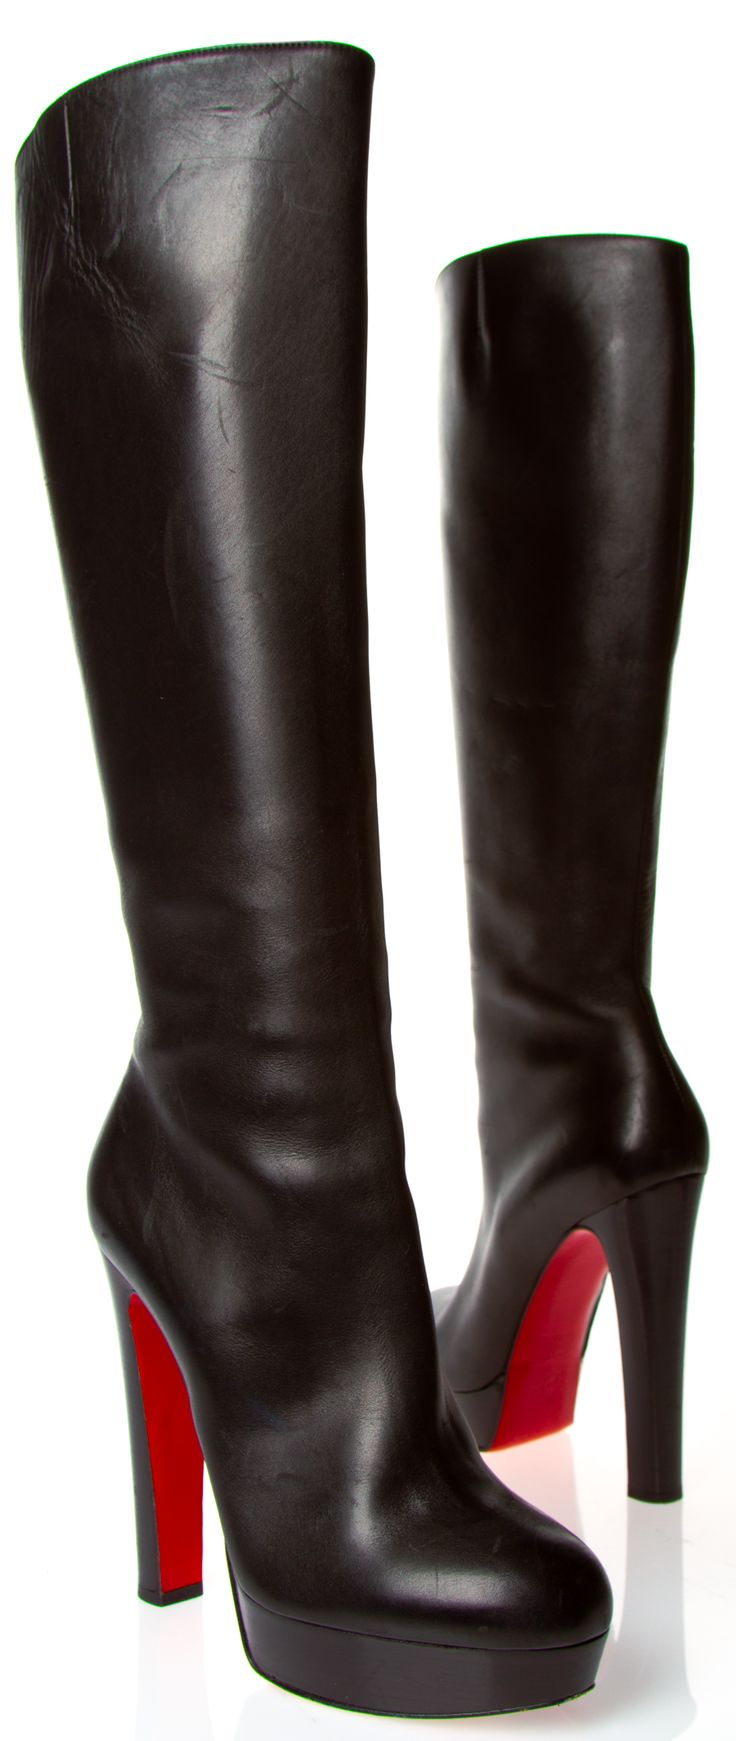 Oh la la! Happy Valentine's Day to Moi! CHRISTIAN LOUBOUTIN BOOTS @Michelle Coleman-HERS